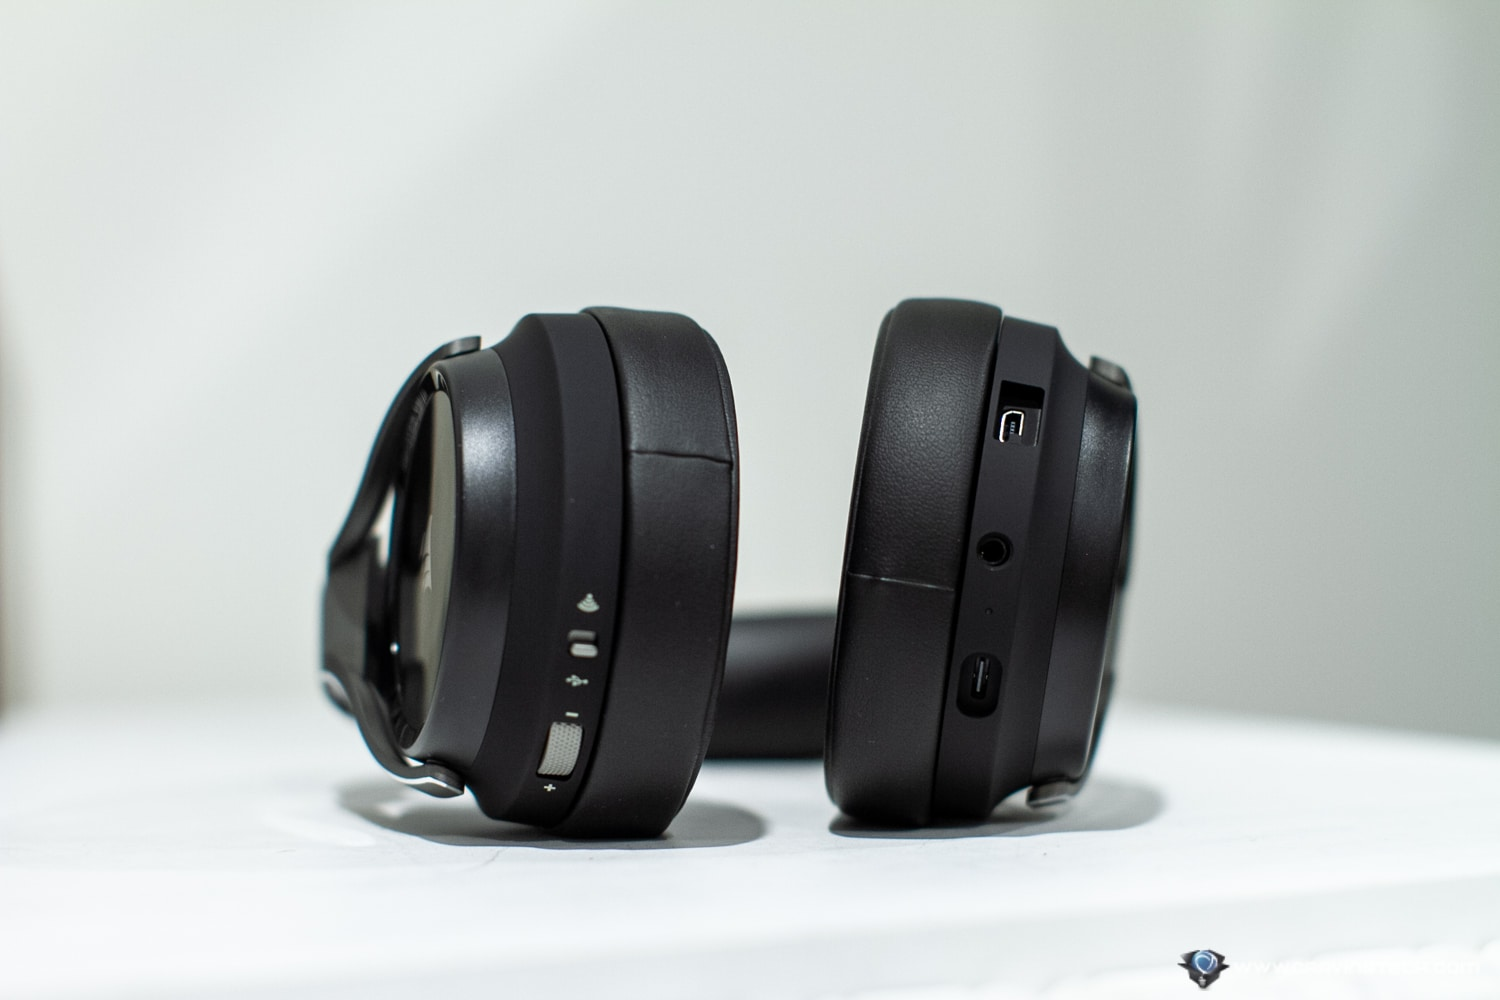 CORSAIR Virtuoso Review